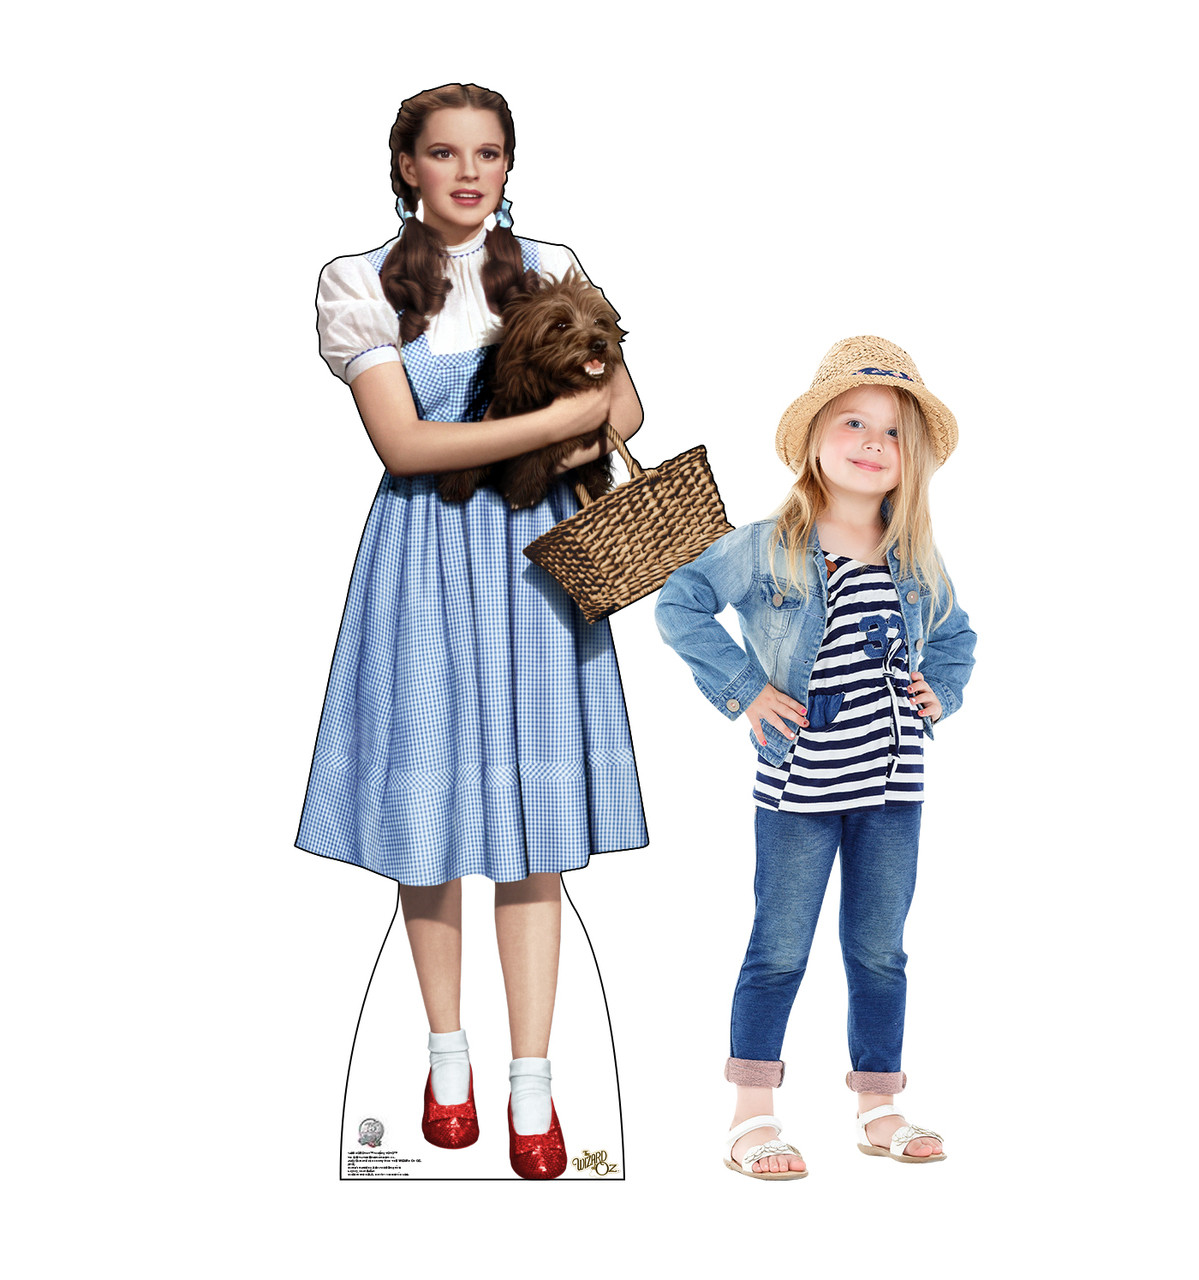 Dorothy from the Wizard of Oz Holding Toto - Life size cardboard cutout